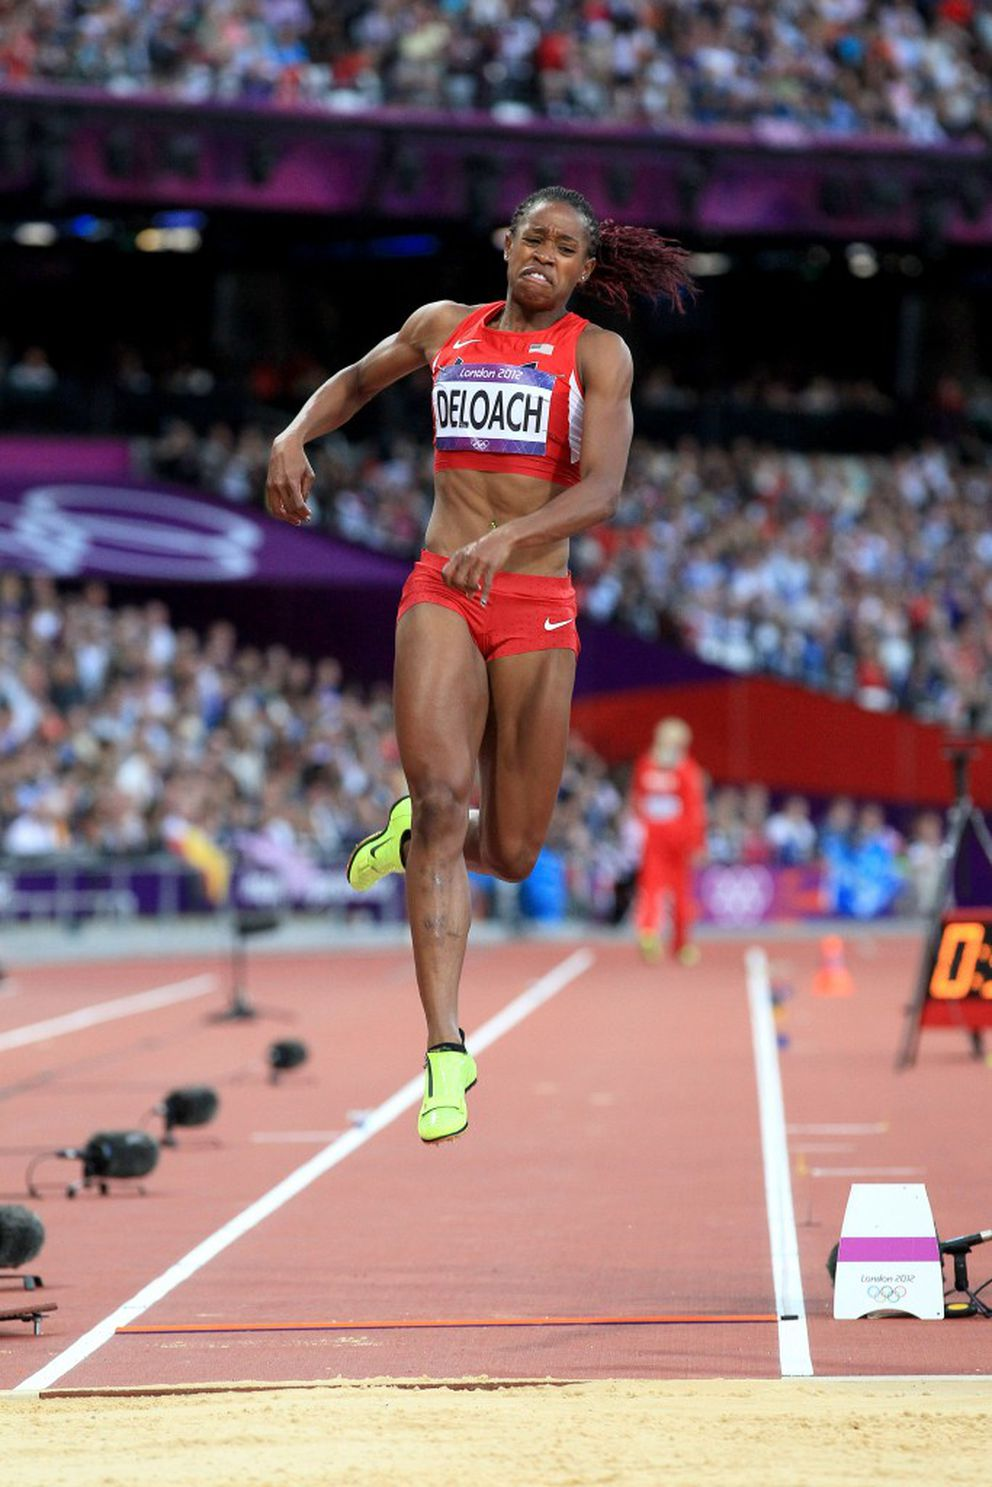 Janay DeLoach competes at the 2012 Olympics in London. DeLoach claimed a bronze medal on her sport's brightest stage.(Victah Sailer / Photorun.net)